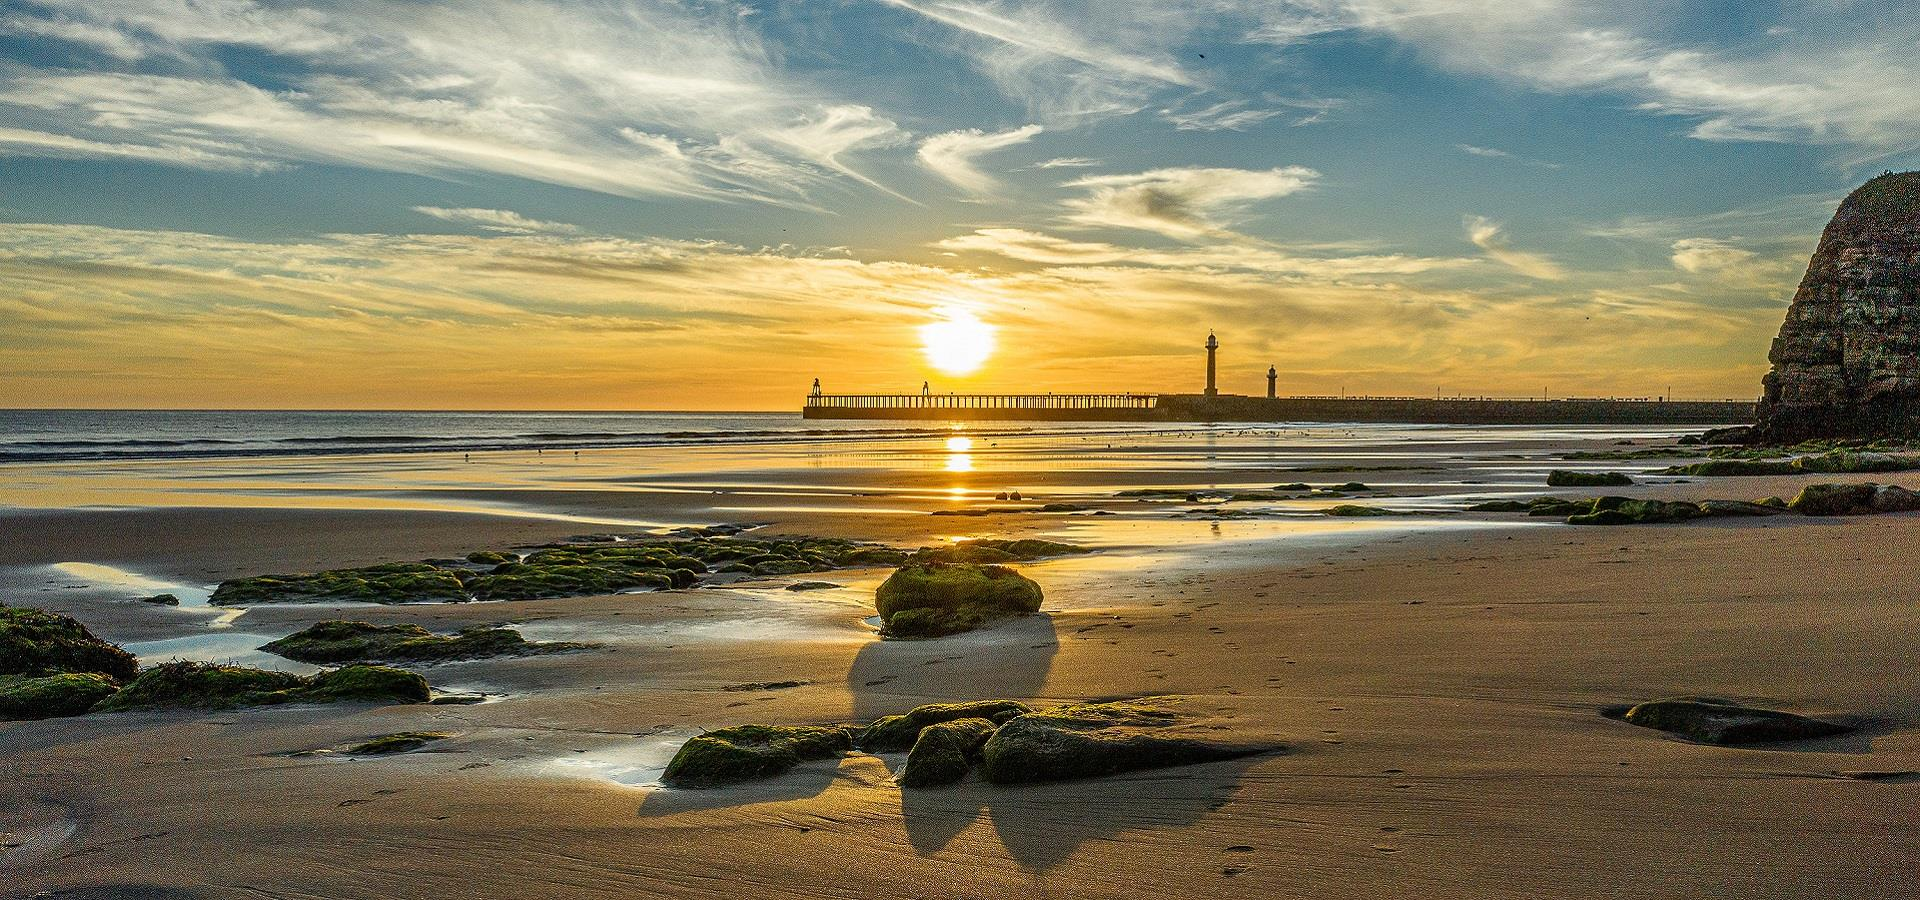 Whitby Beach at Sunrise by Charlotte Graham